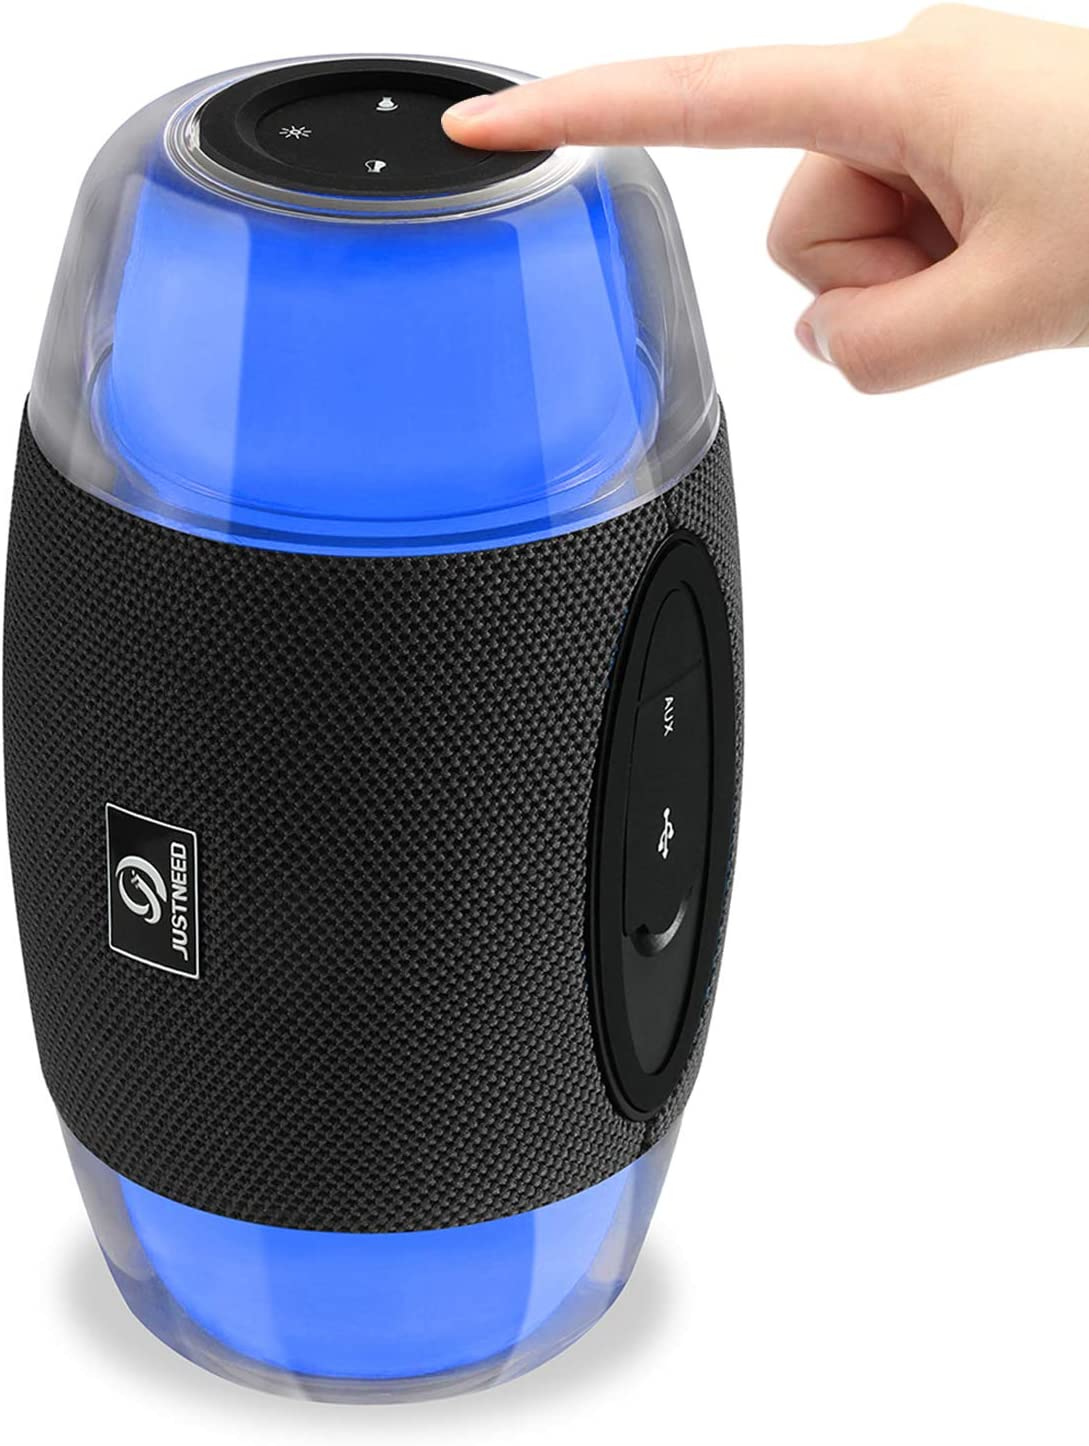 Wireless Bluetooth Speaker with Lights - JUSTNEED IPX5 Waterproof 16W Loud Stereo Speaker with 11 Changing RGB Colors LED Lamp for Home Party Camping Beach, Grey